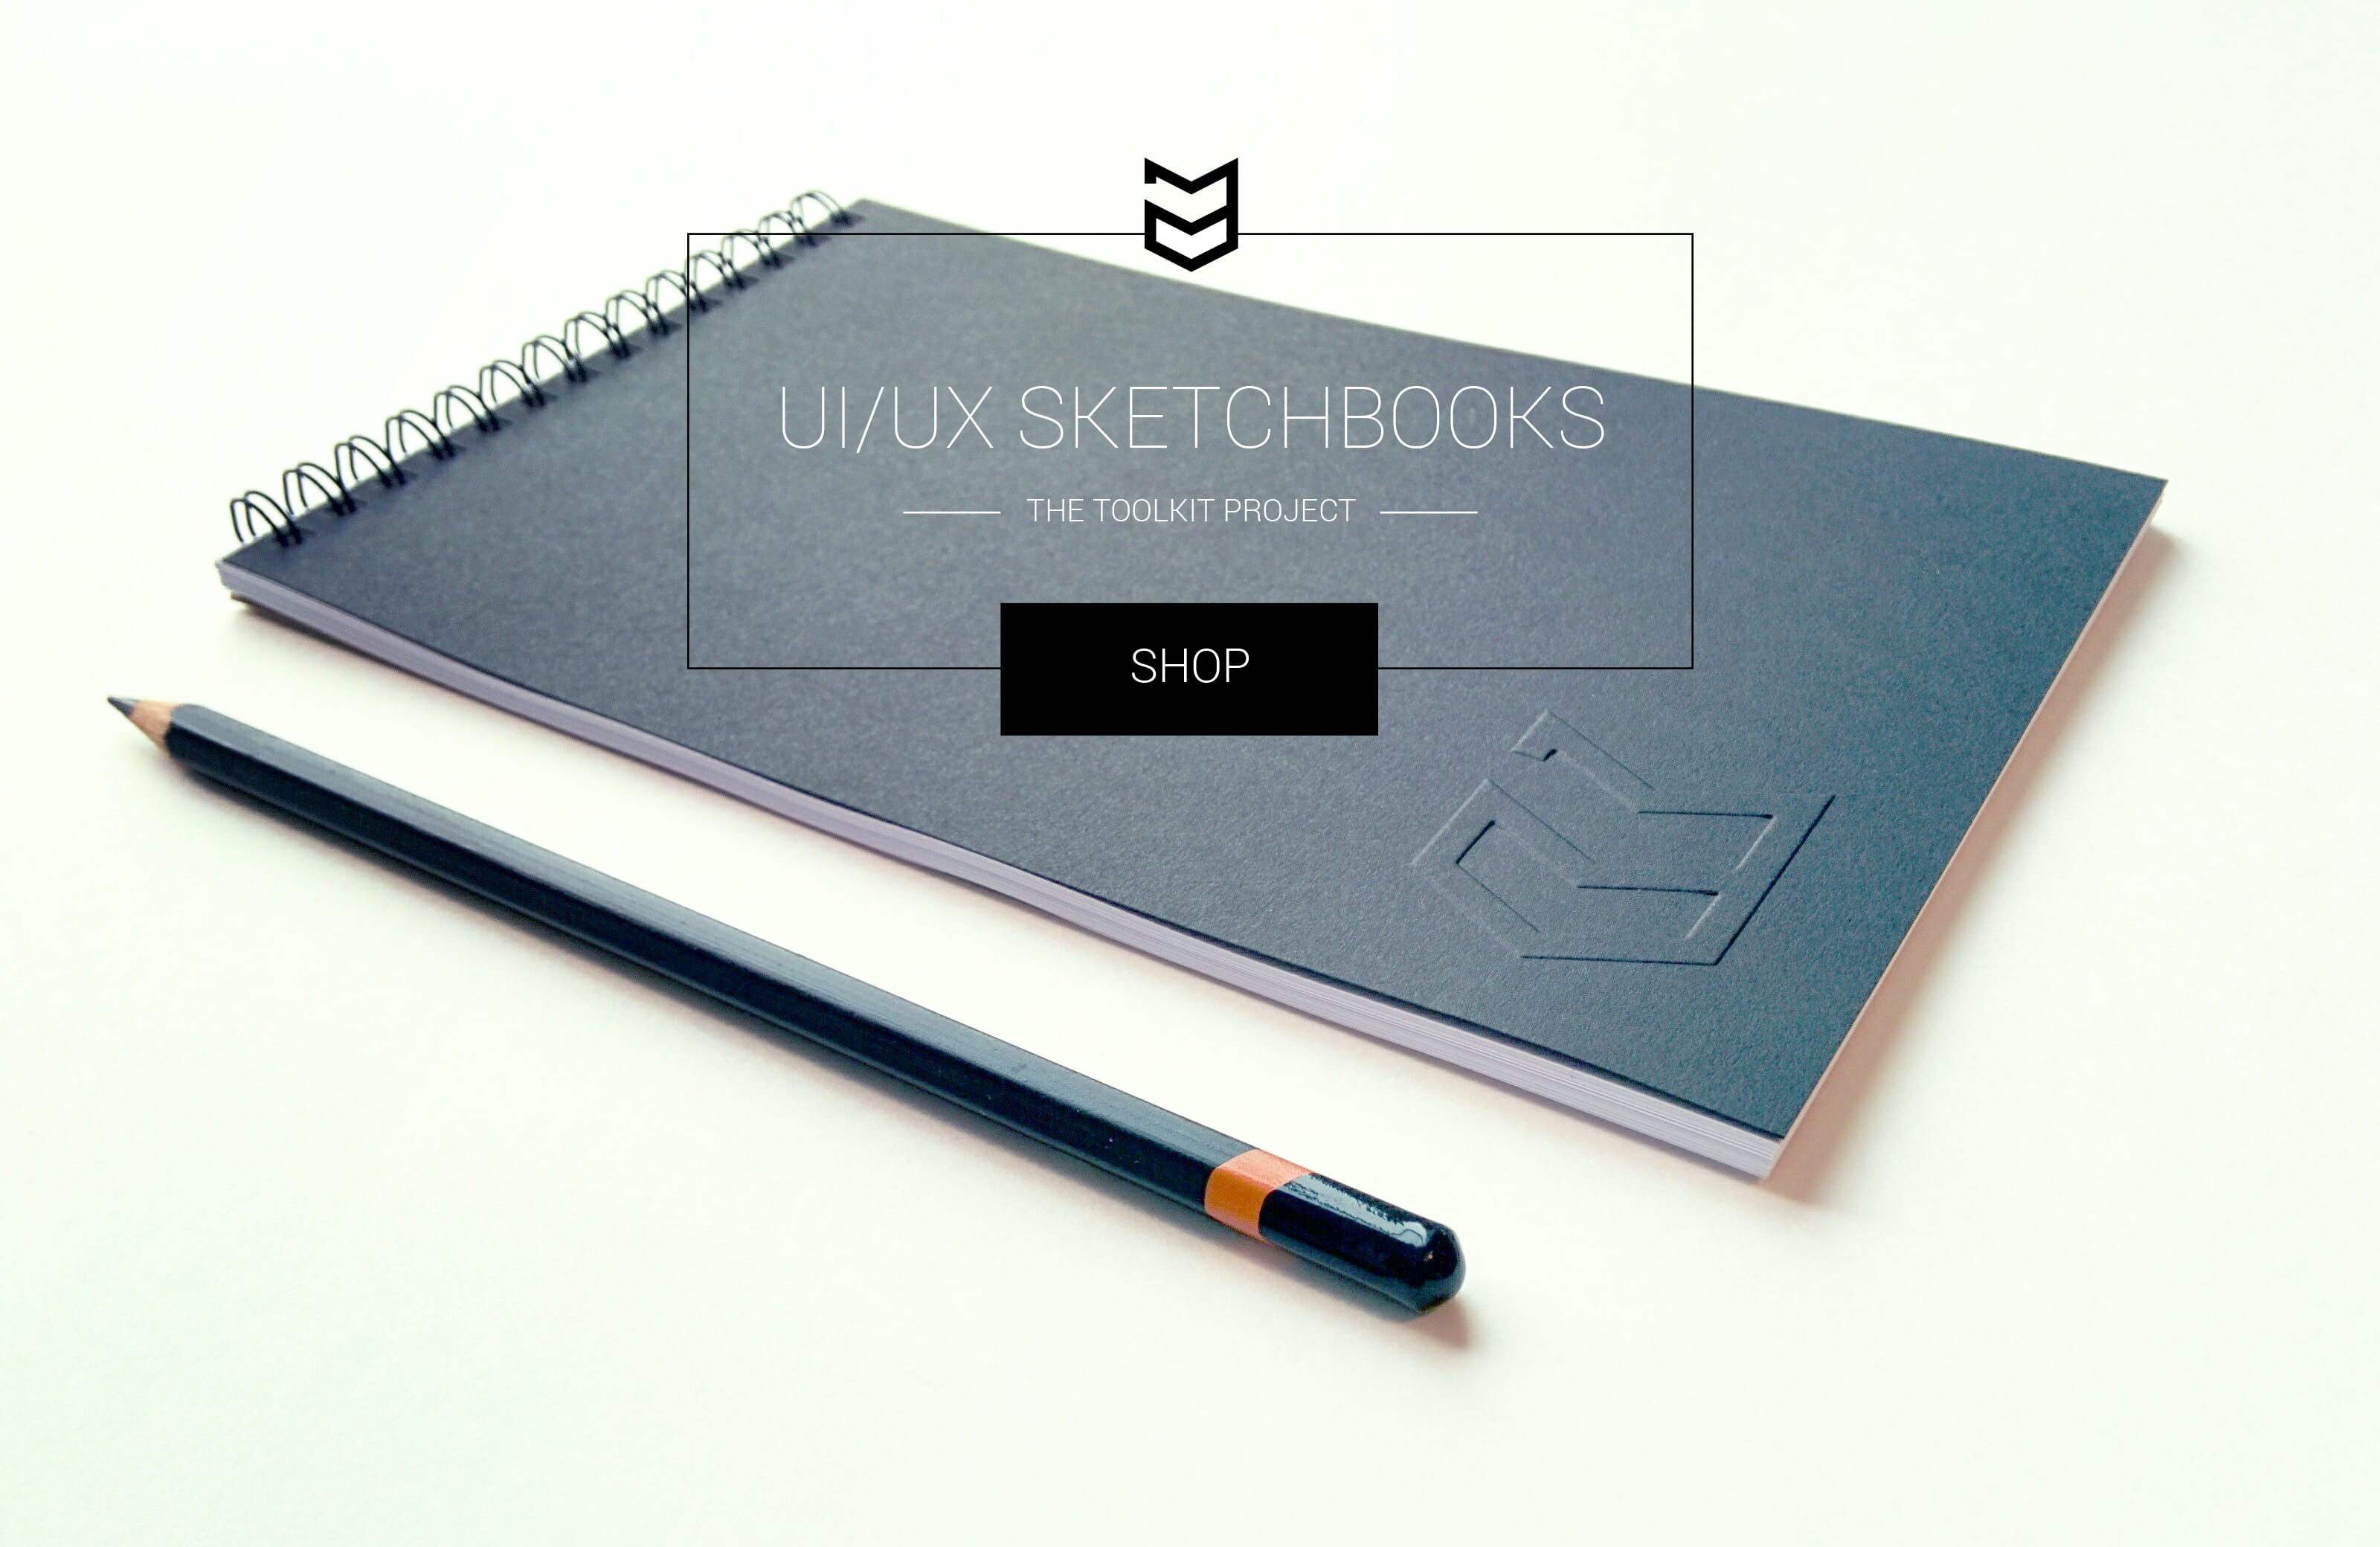 New UI UX Sketchbooks Available: The Toolkit Project